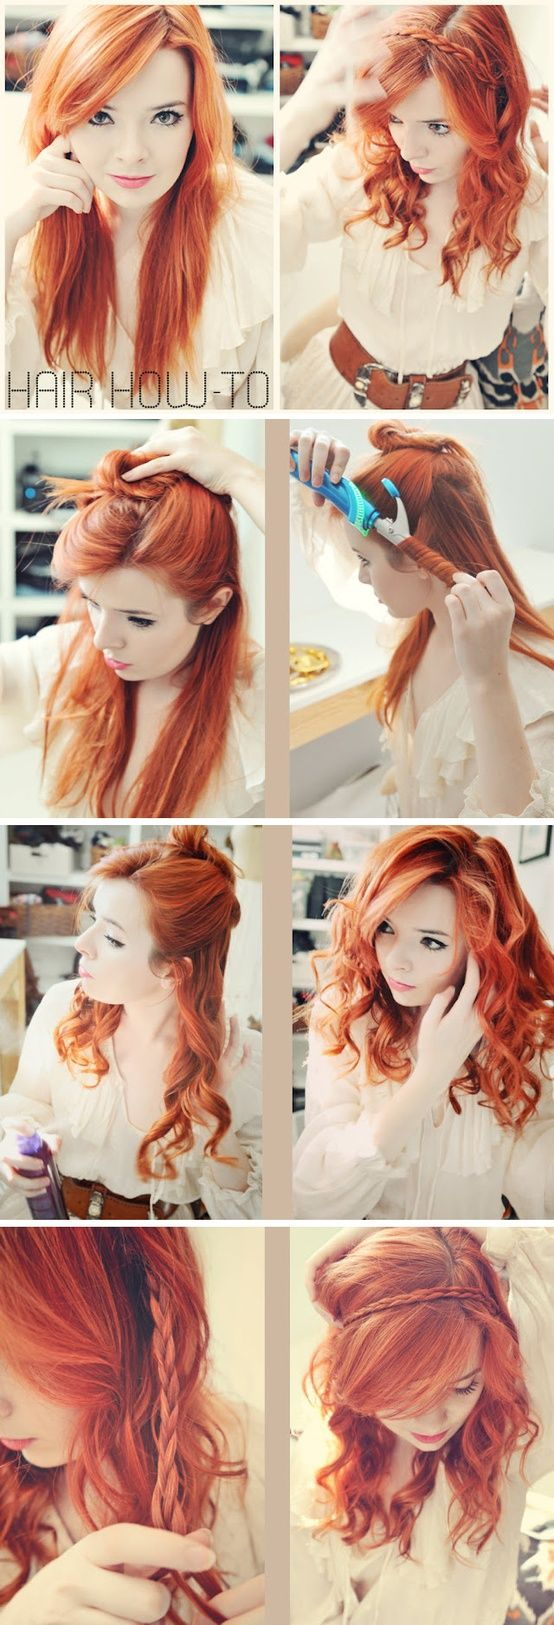 Braided headband if i ever dyed my hair it would be this color